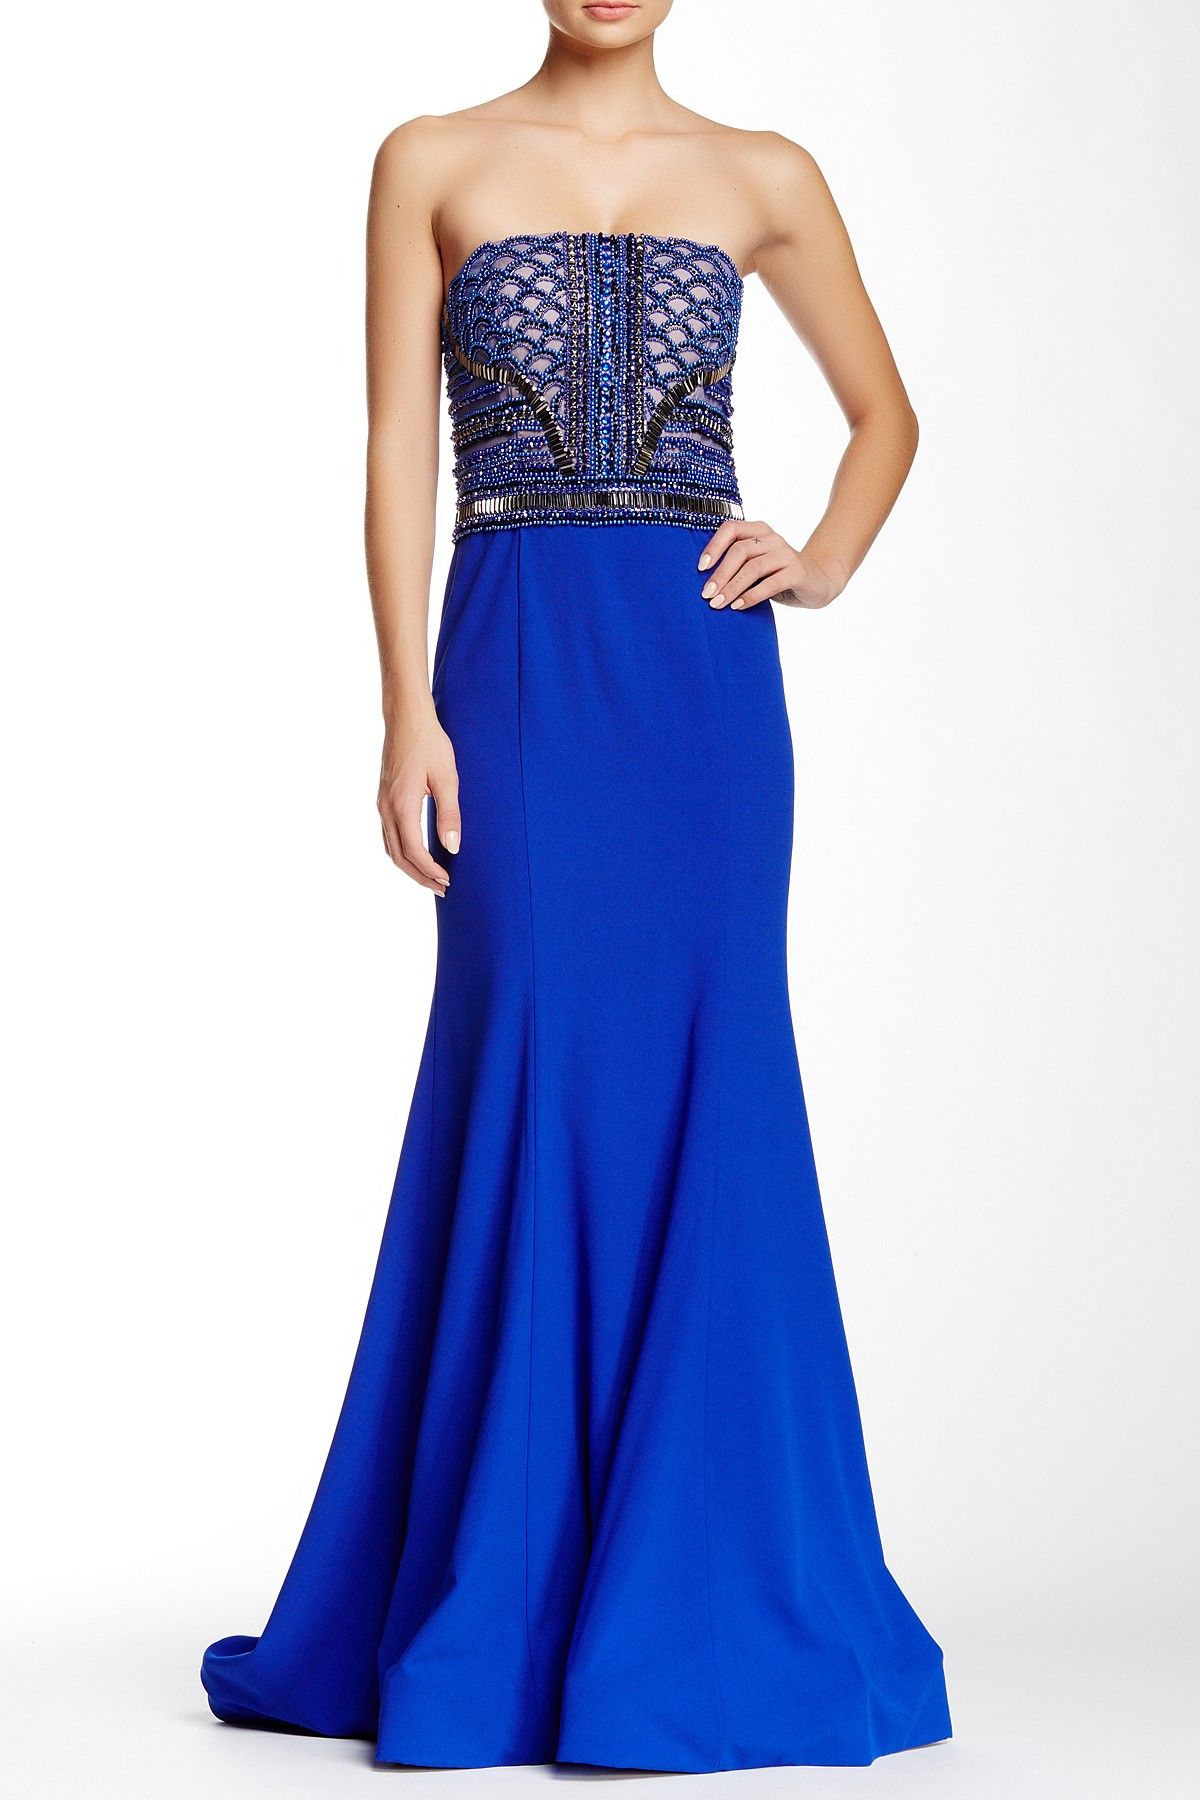 TERANI COUTURE | Strapless Geometric Beaded Gown | HauteLook     jαɢlαdy